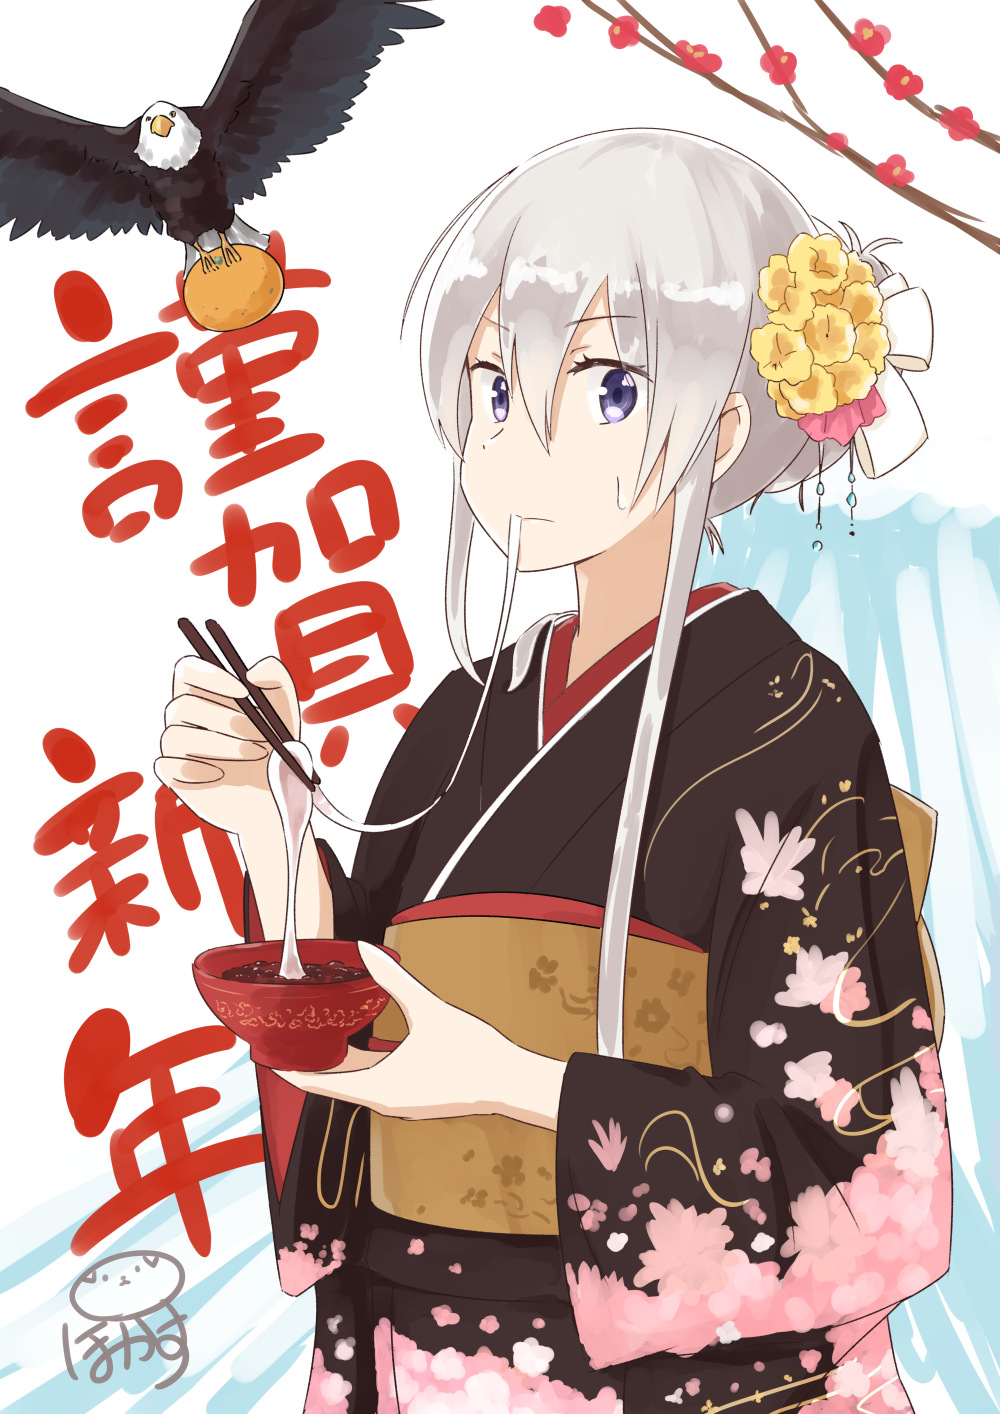 1girl alternate_costume alternate_hairstyle azur_lane bald_eagle bird bowl chopsticks commentary_request eagle eating enterprise_(azur_lane) folded_ponytail grey_eyes hair_ribbon highres holding japanese_clothes kimono long_hair looking_at_viewer mochi new_year obi pokasu ribbon sash silver_hair simple_background sweat translated white_background